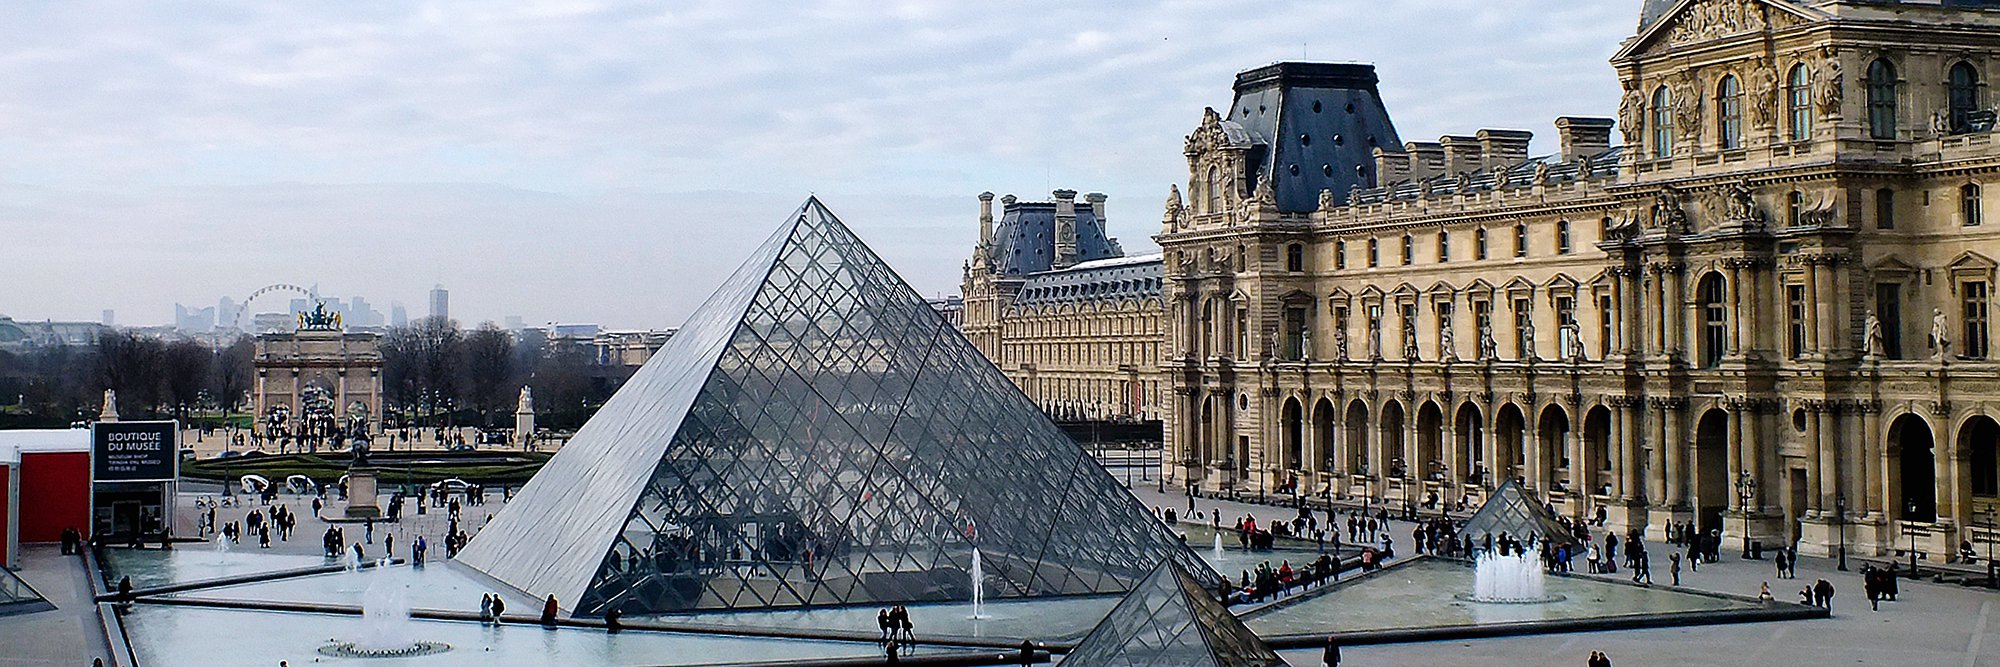 glass structure beside brown building, Louvre Pyramid, Paris, France